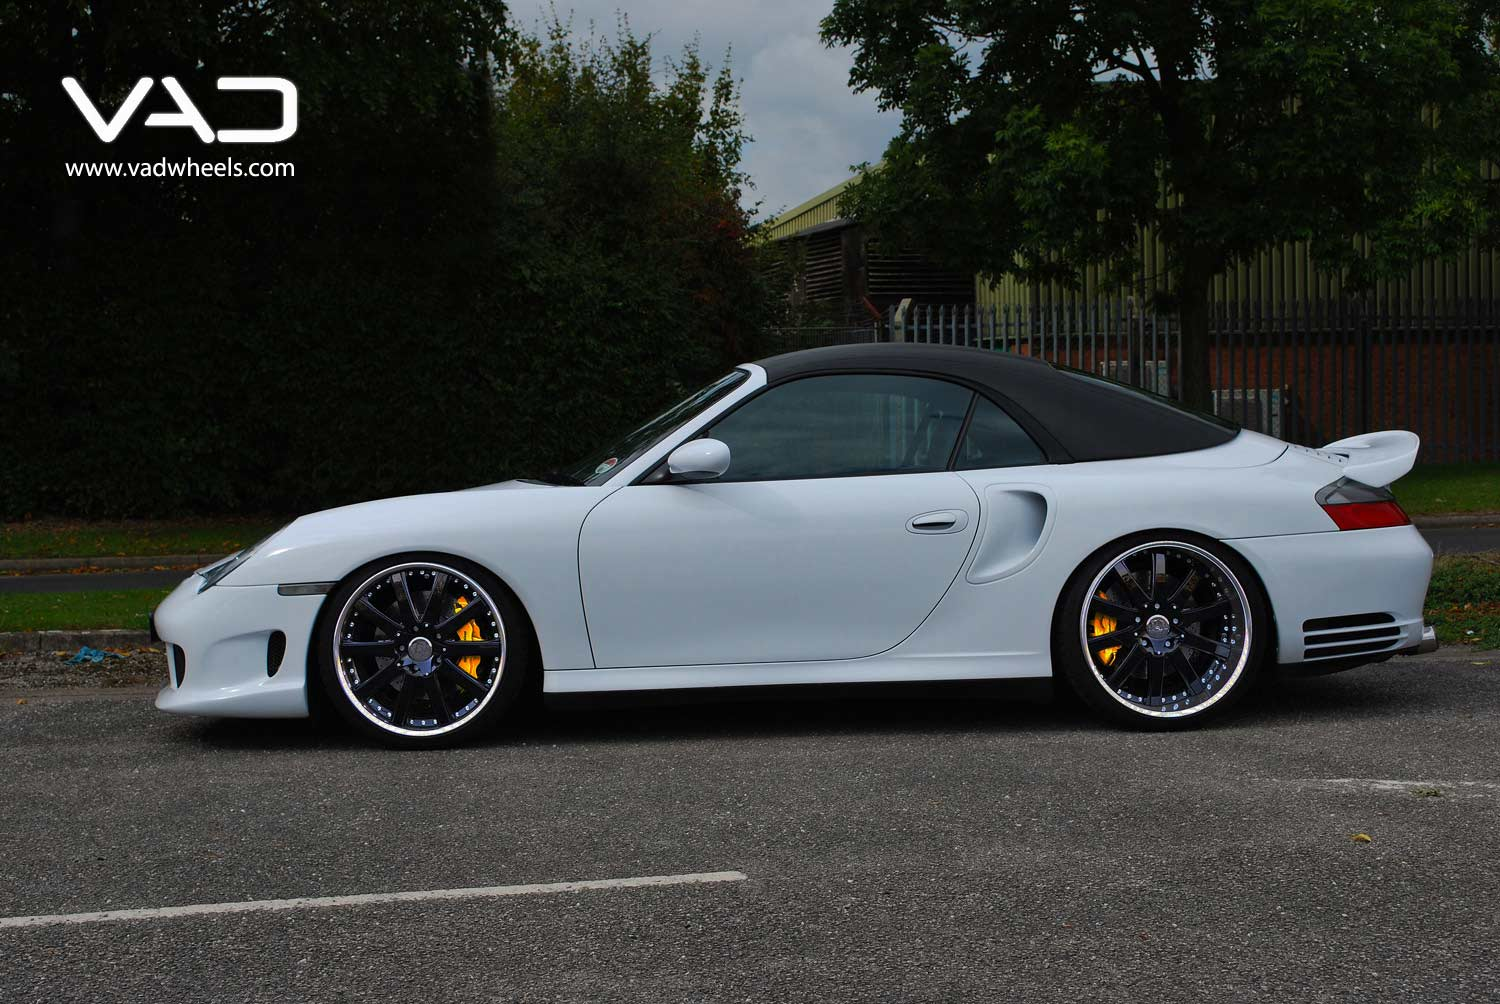 Porsche-996-Turbo-Cabriolet-Fitted-With-20''-Altstadt-F100